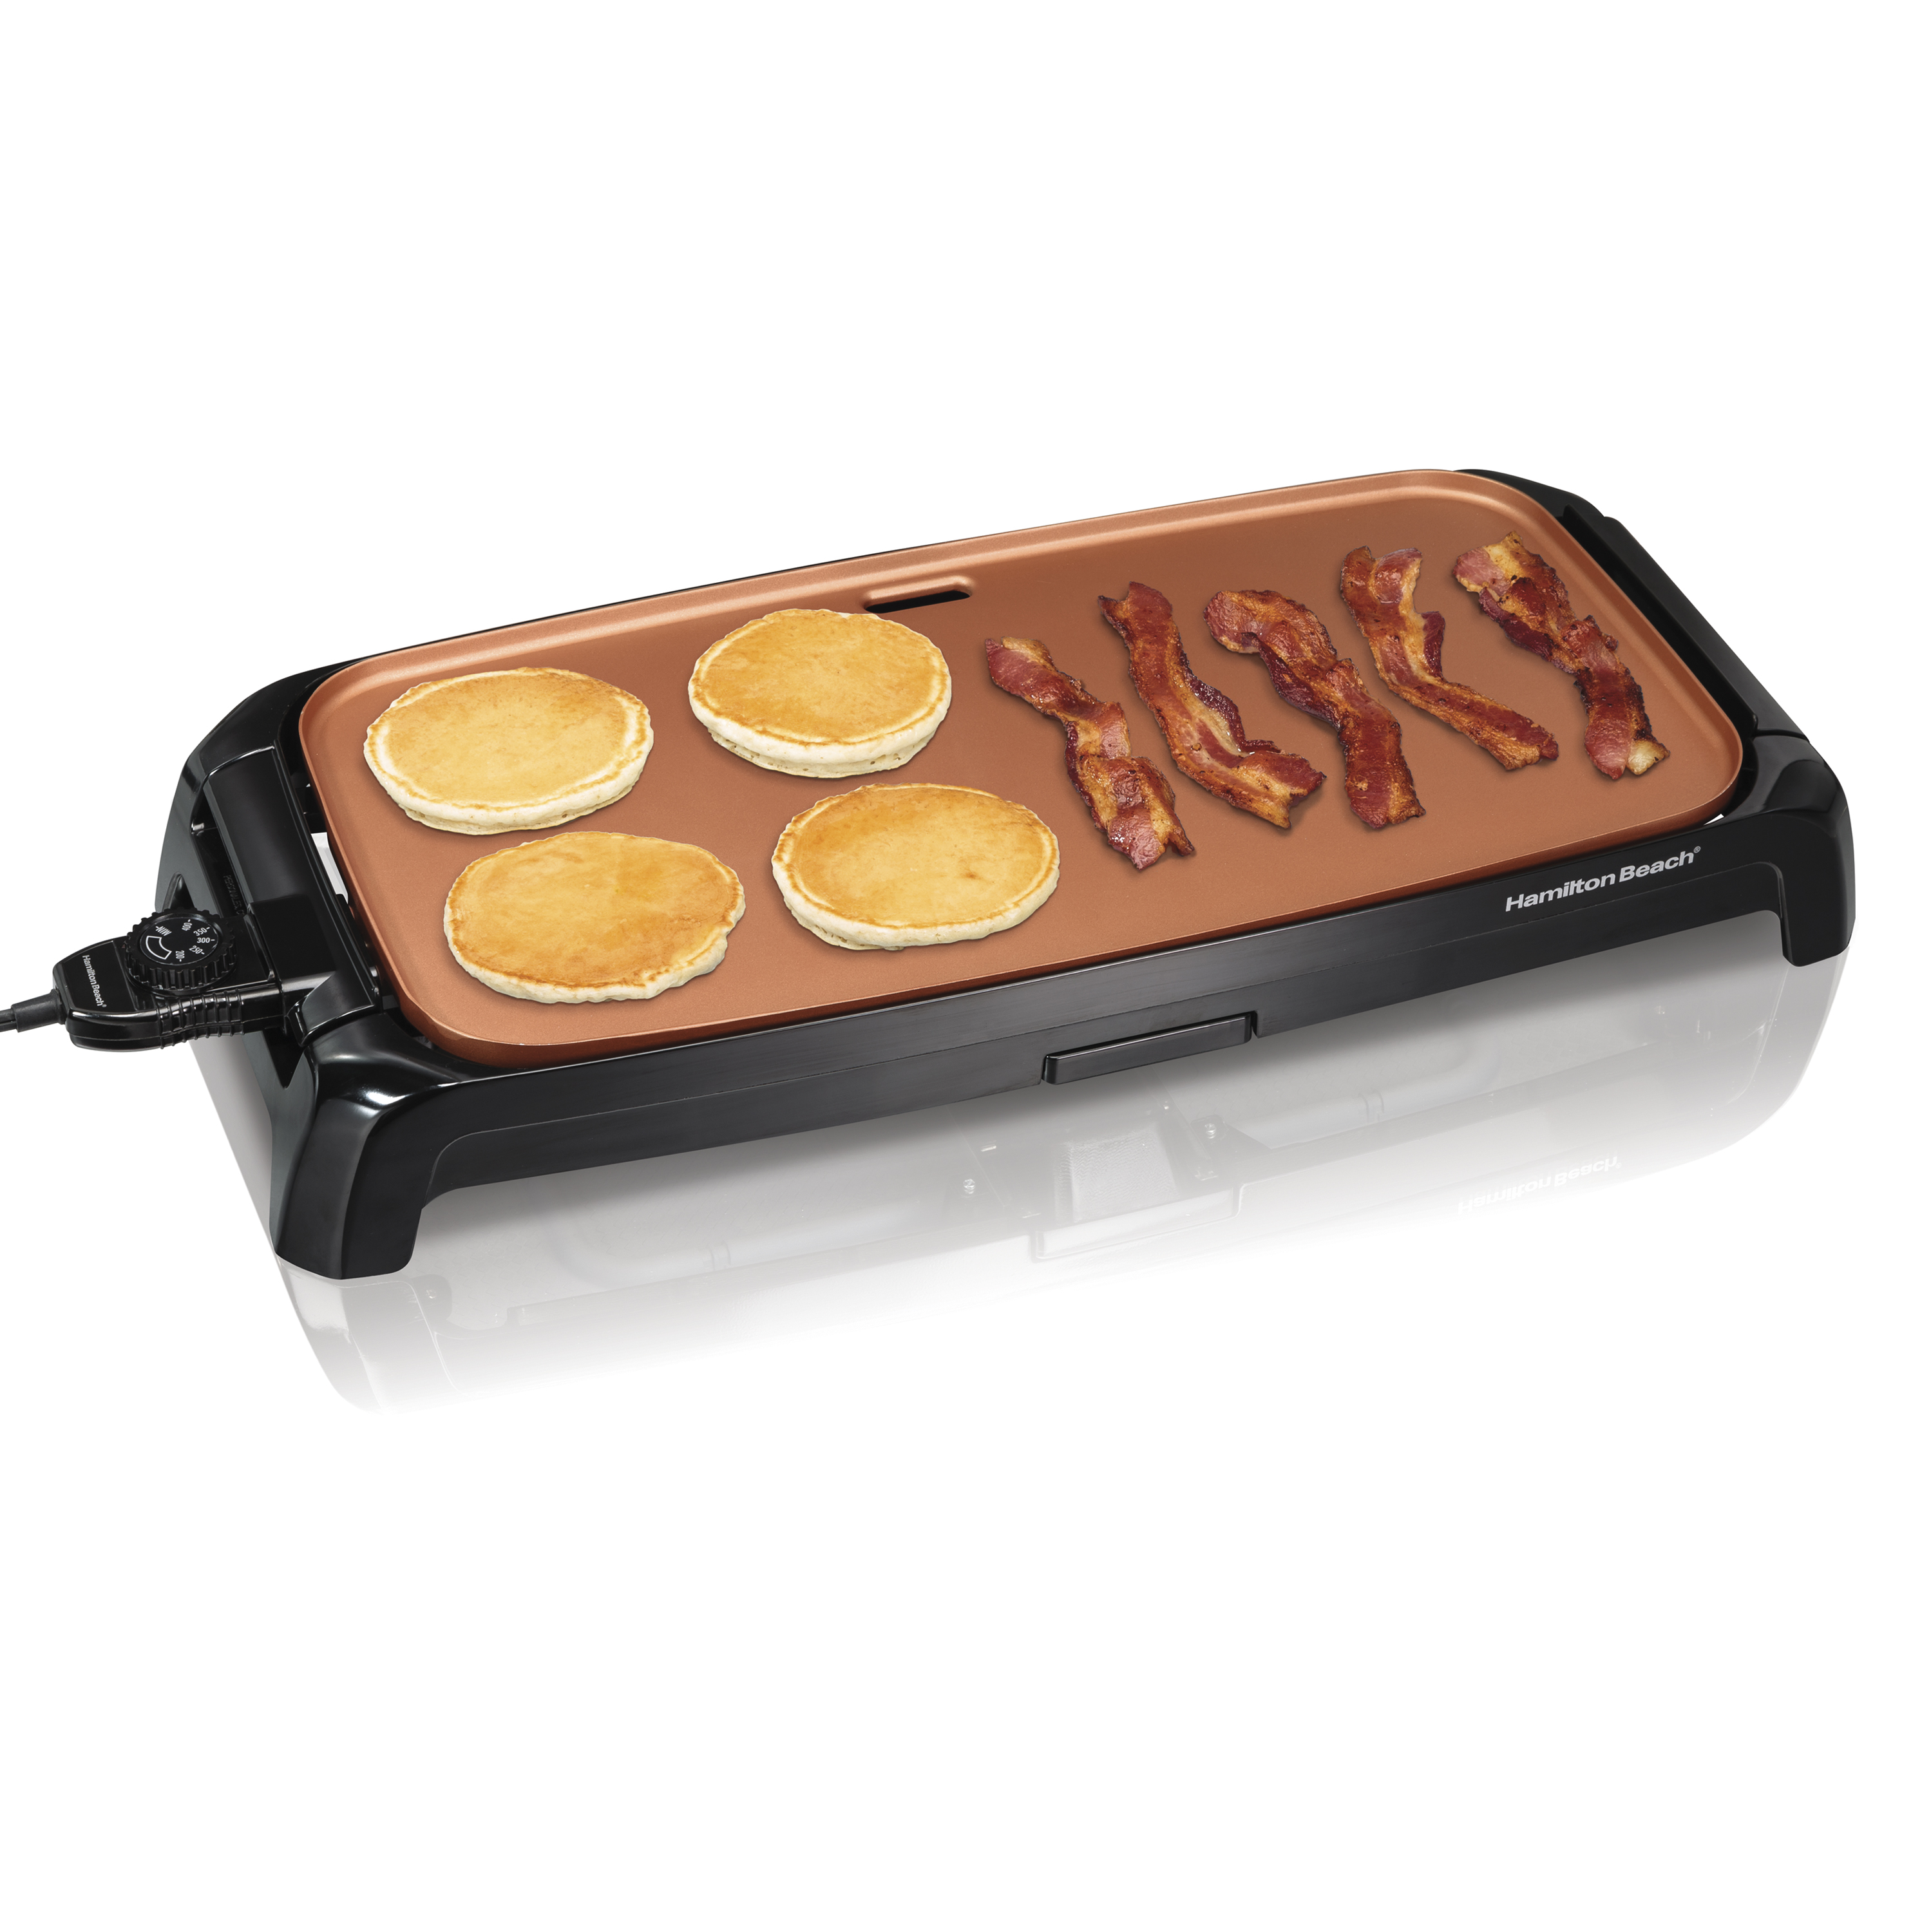 Hamilton Beach® Reversible Durathon® Ceramic Griddle